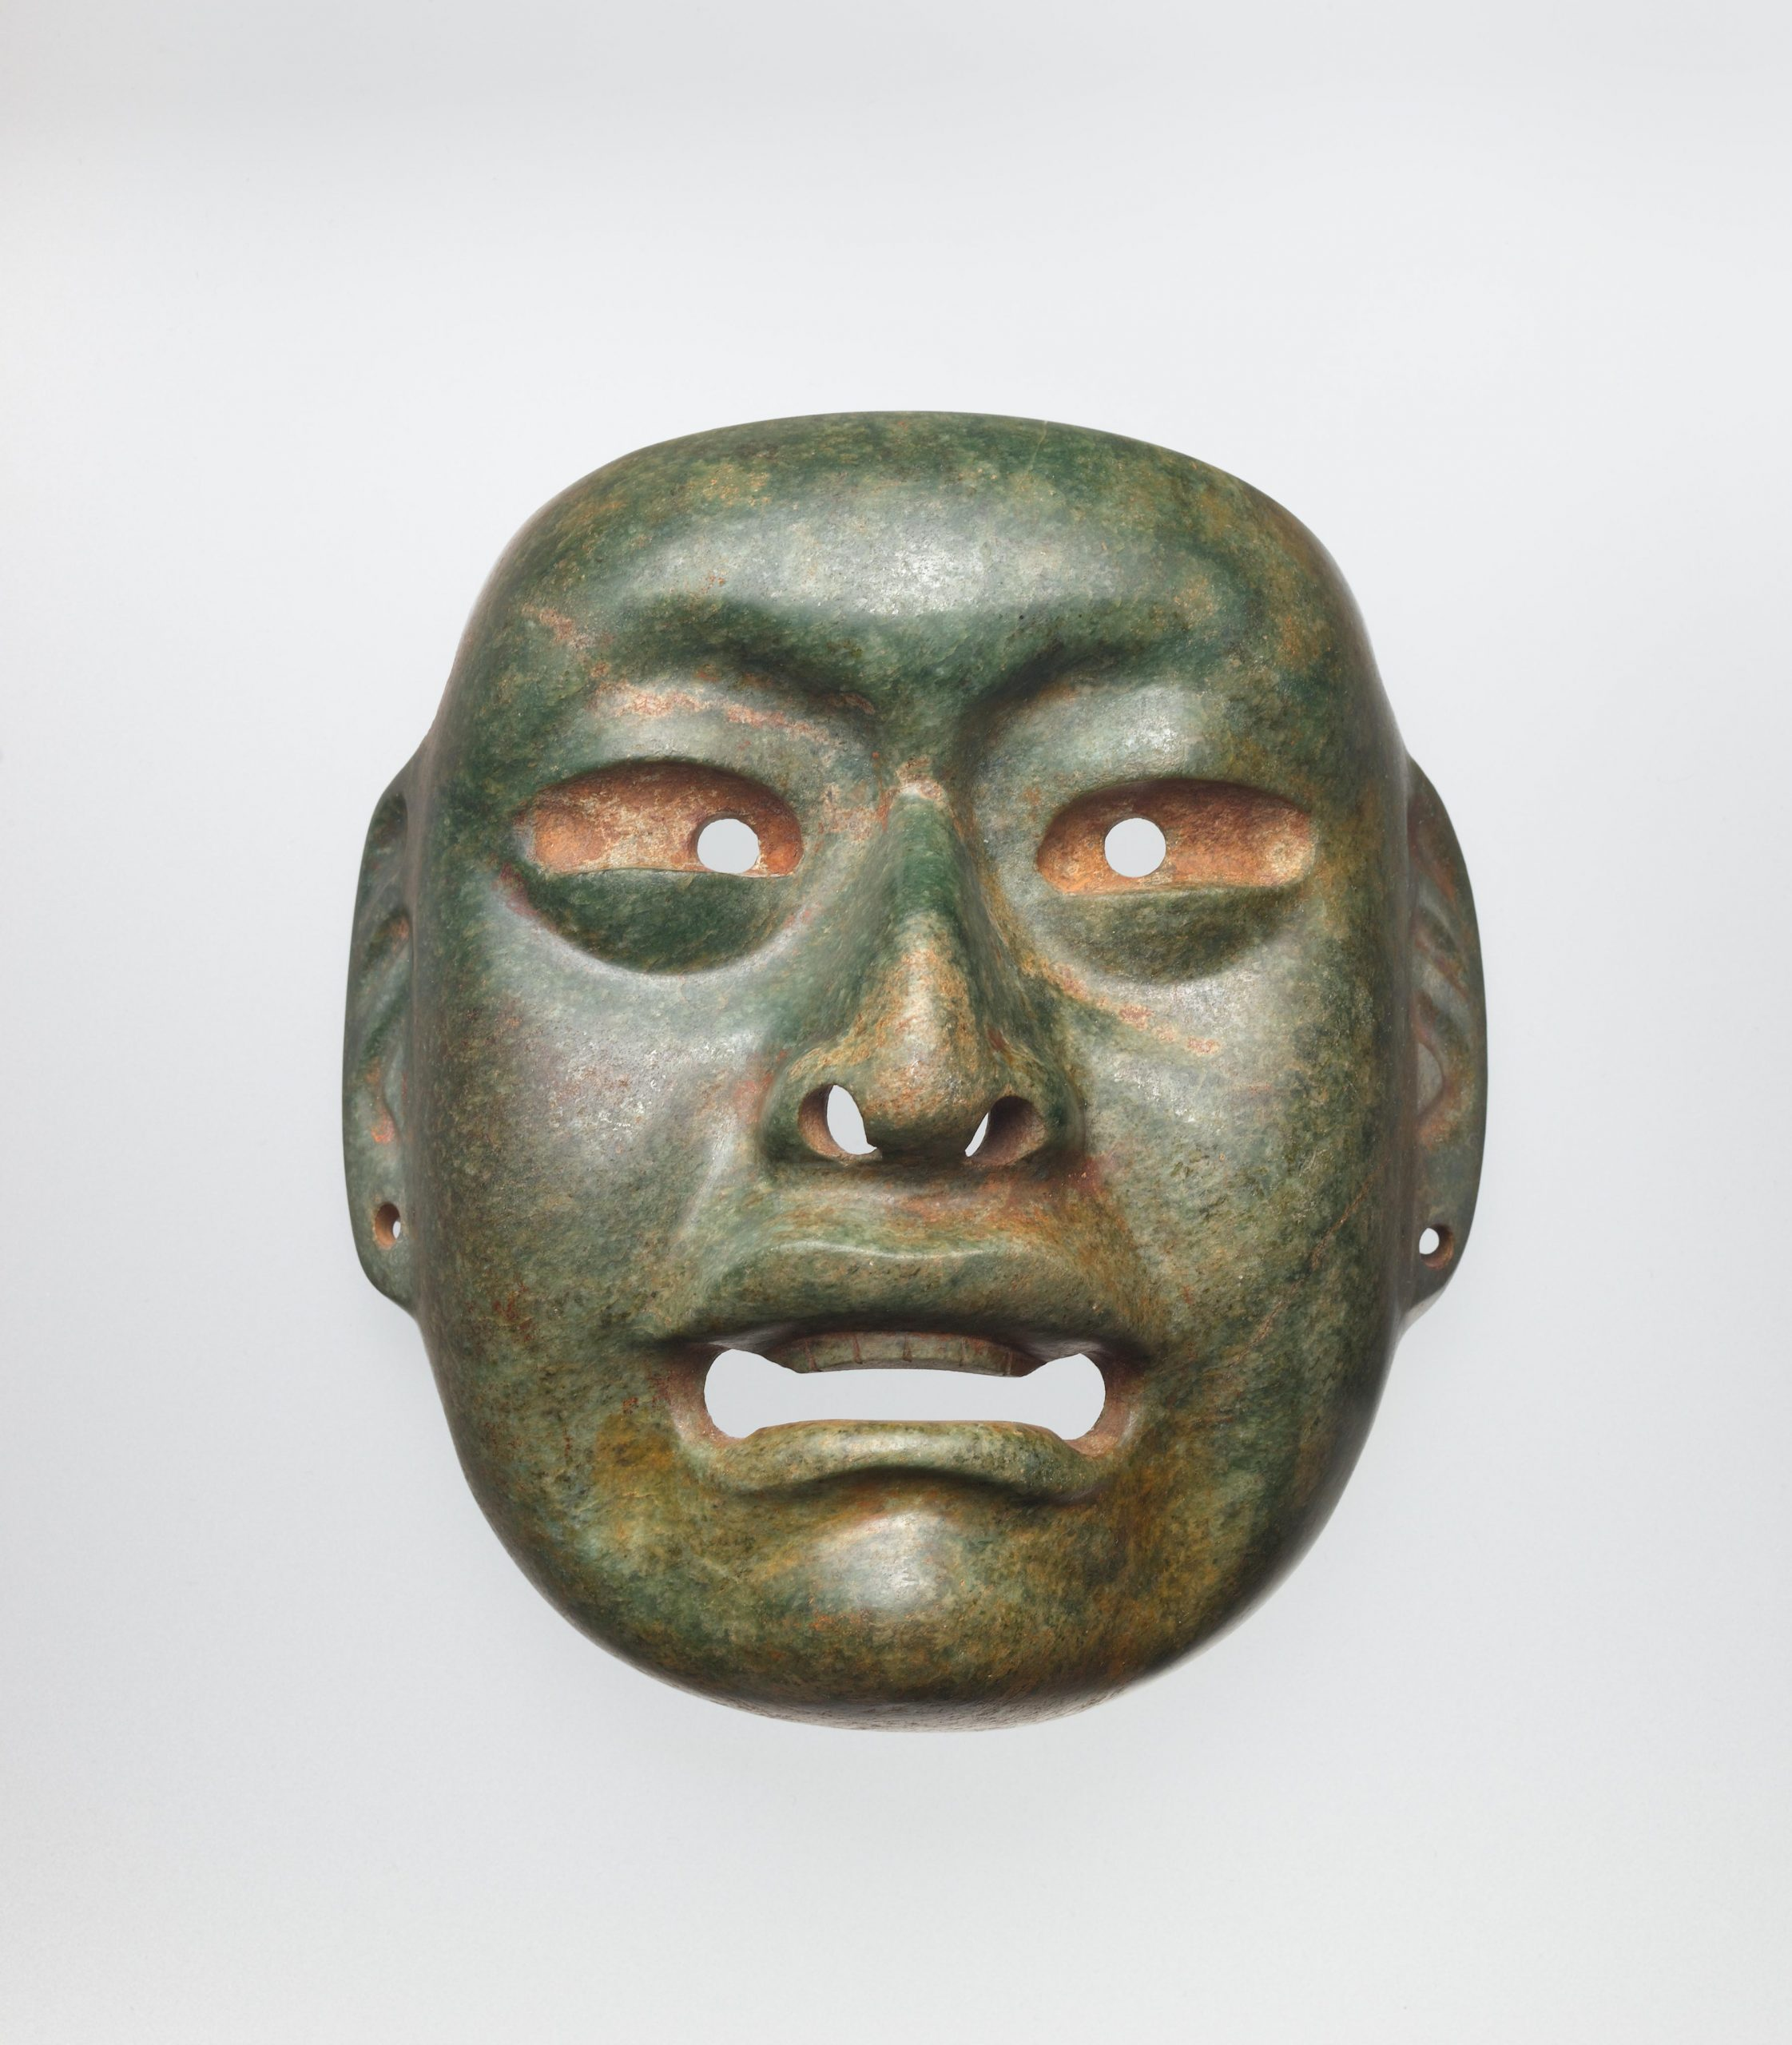 Naturalistic face mask with open mouth, large eyes, and ear spools.